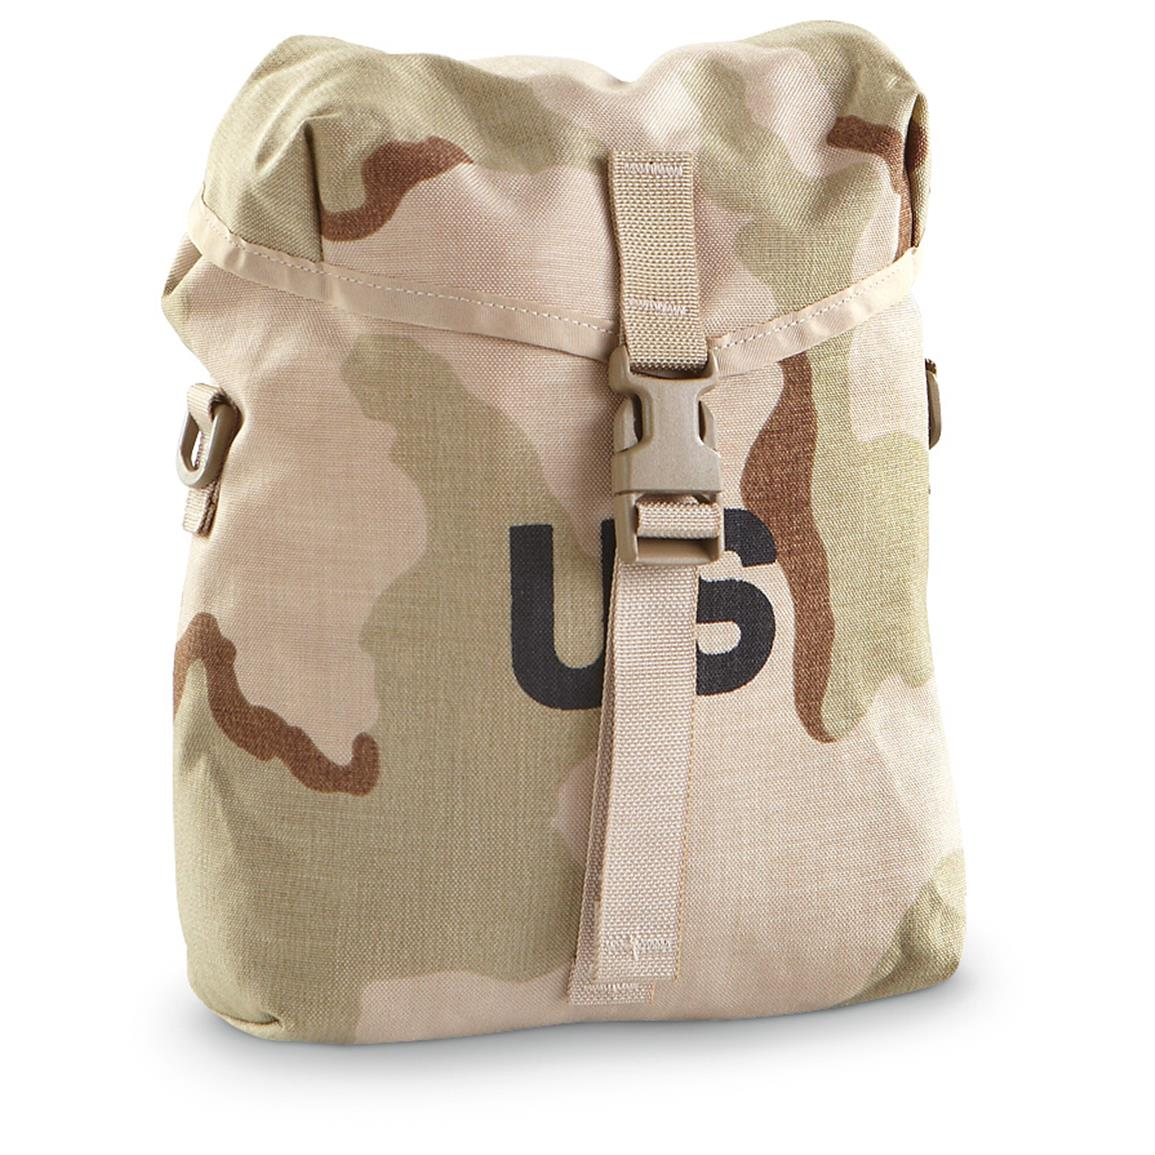 U.S. Military Surplus Sustainment Pouch, New